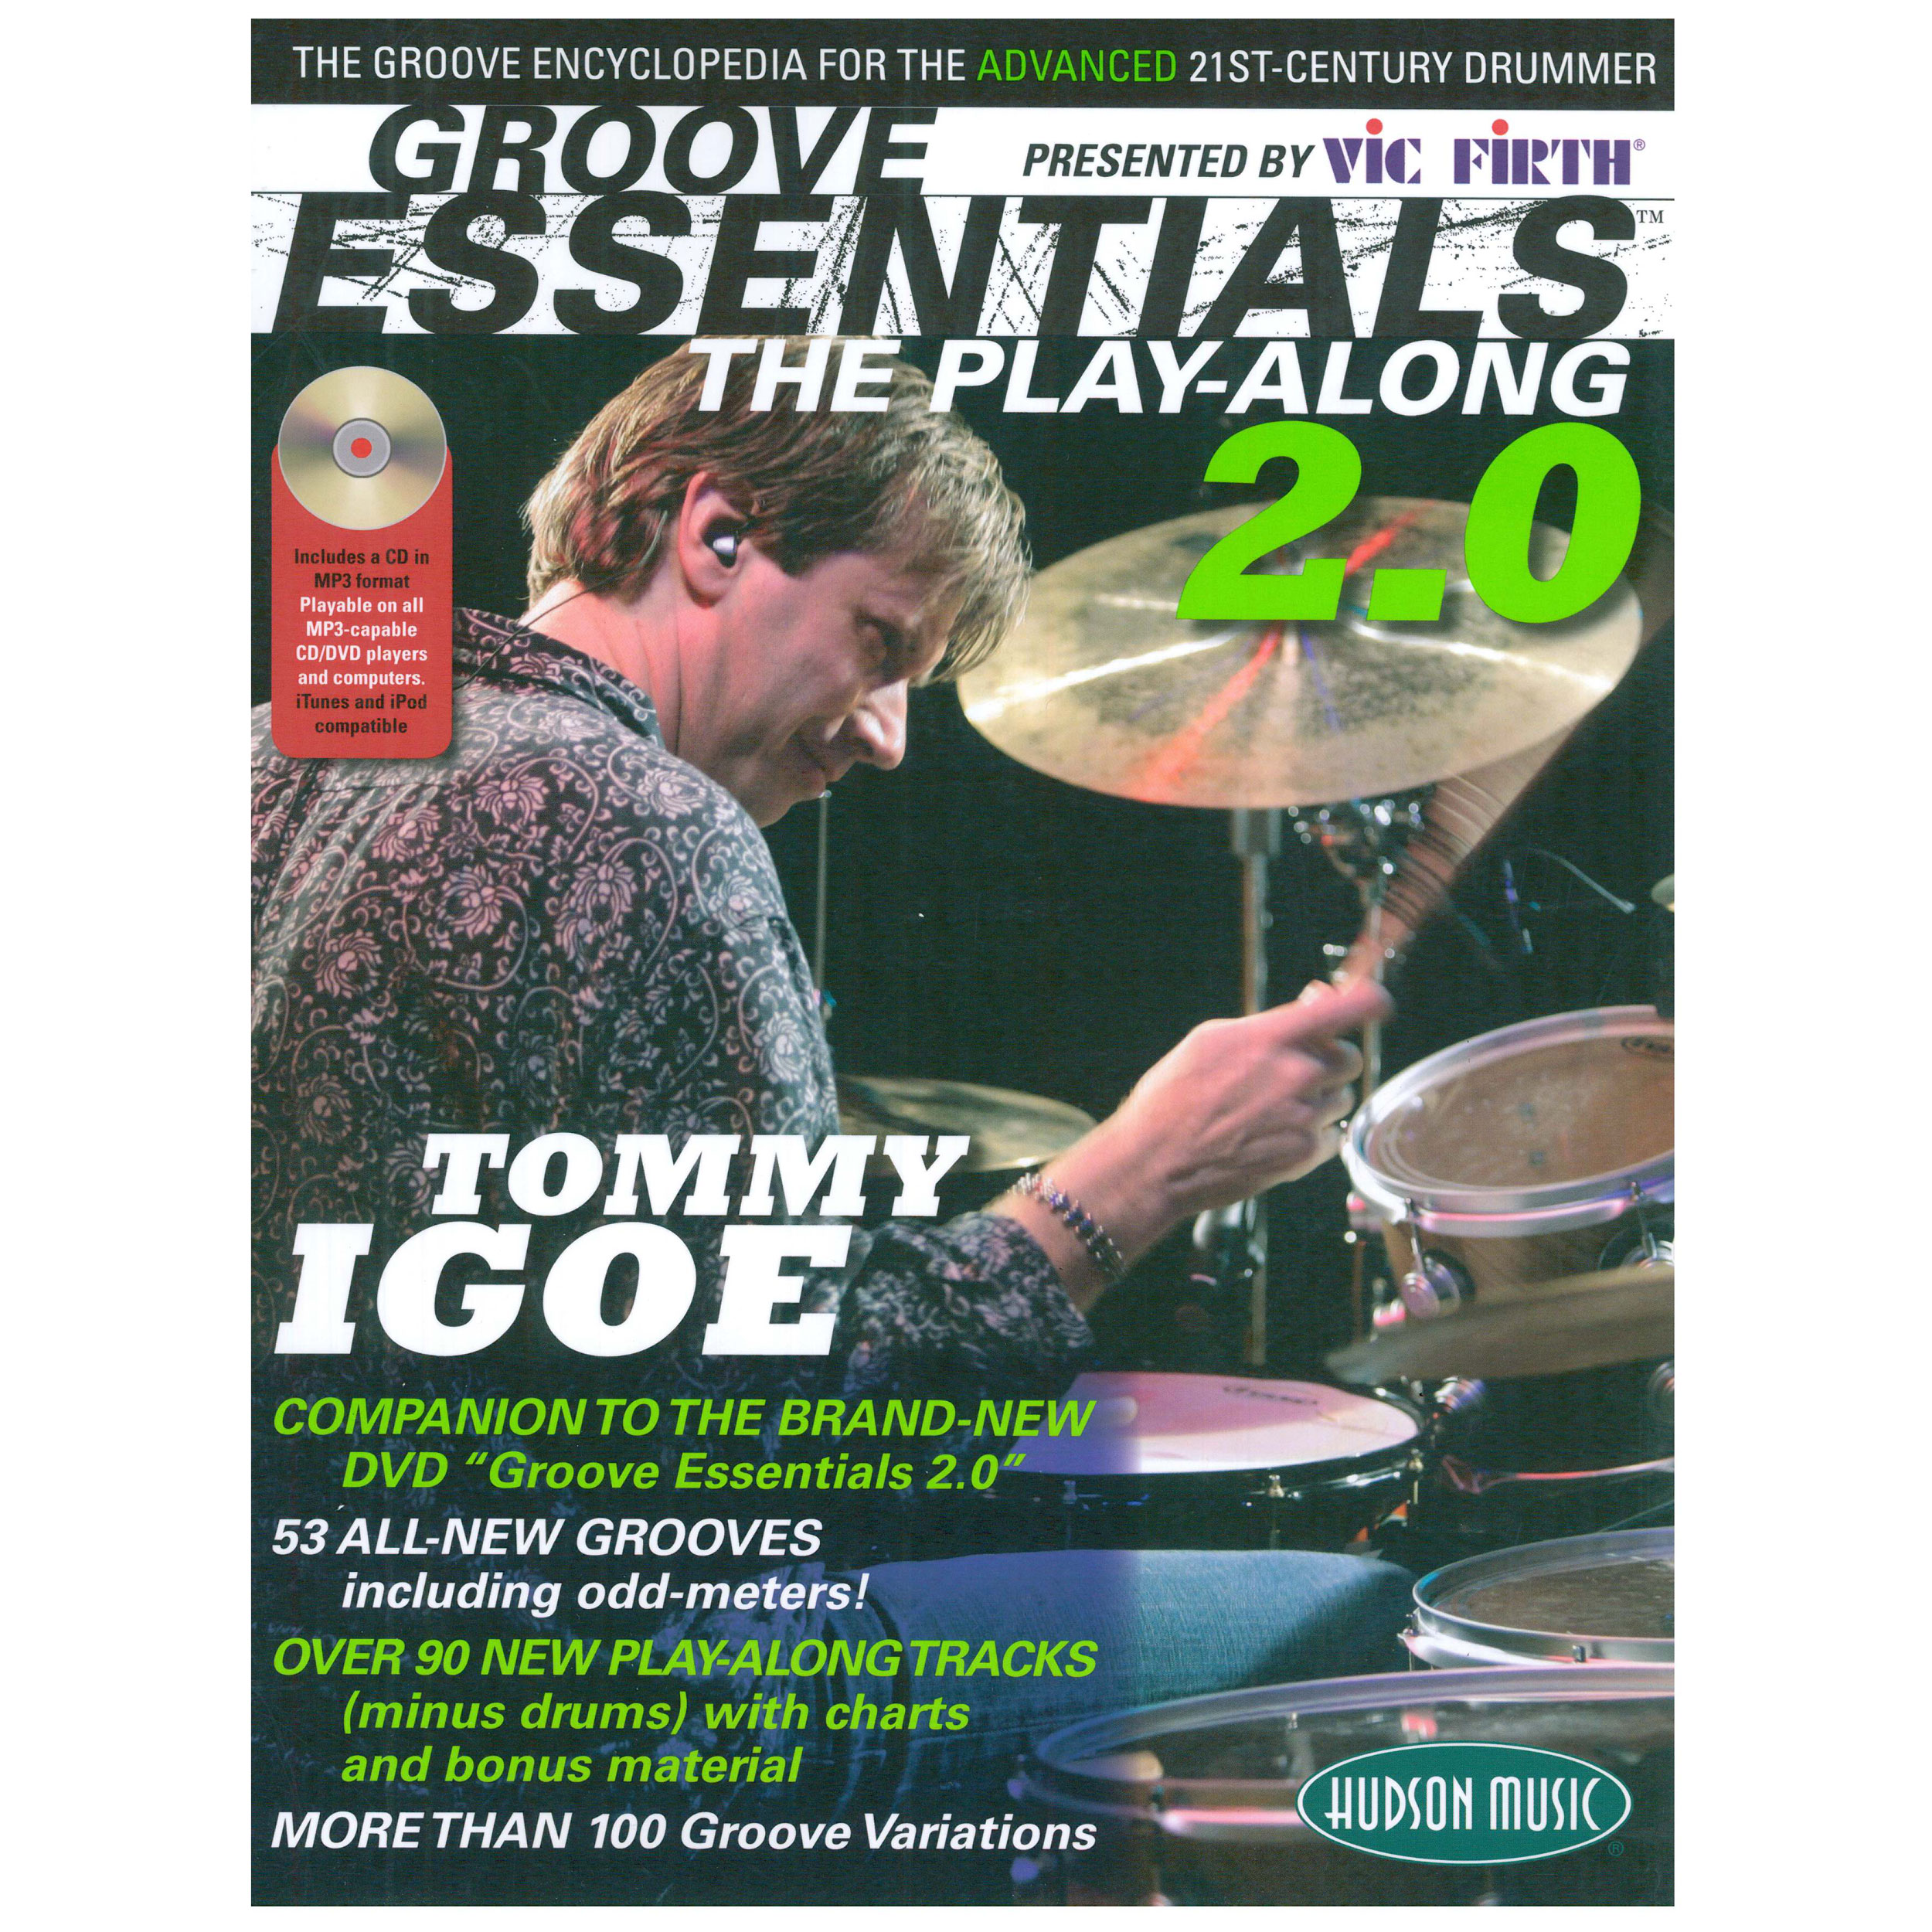 Groove Essentials 2.0: The Play-Along DVD - Tommy Igoe